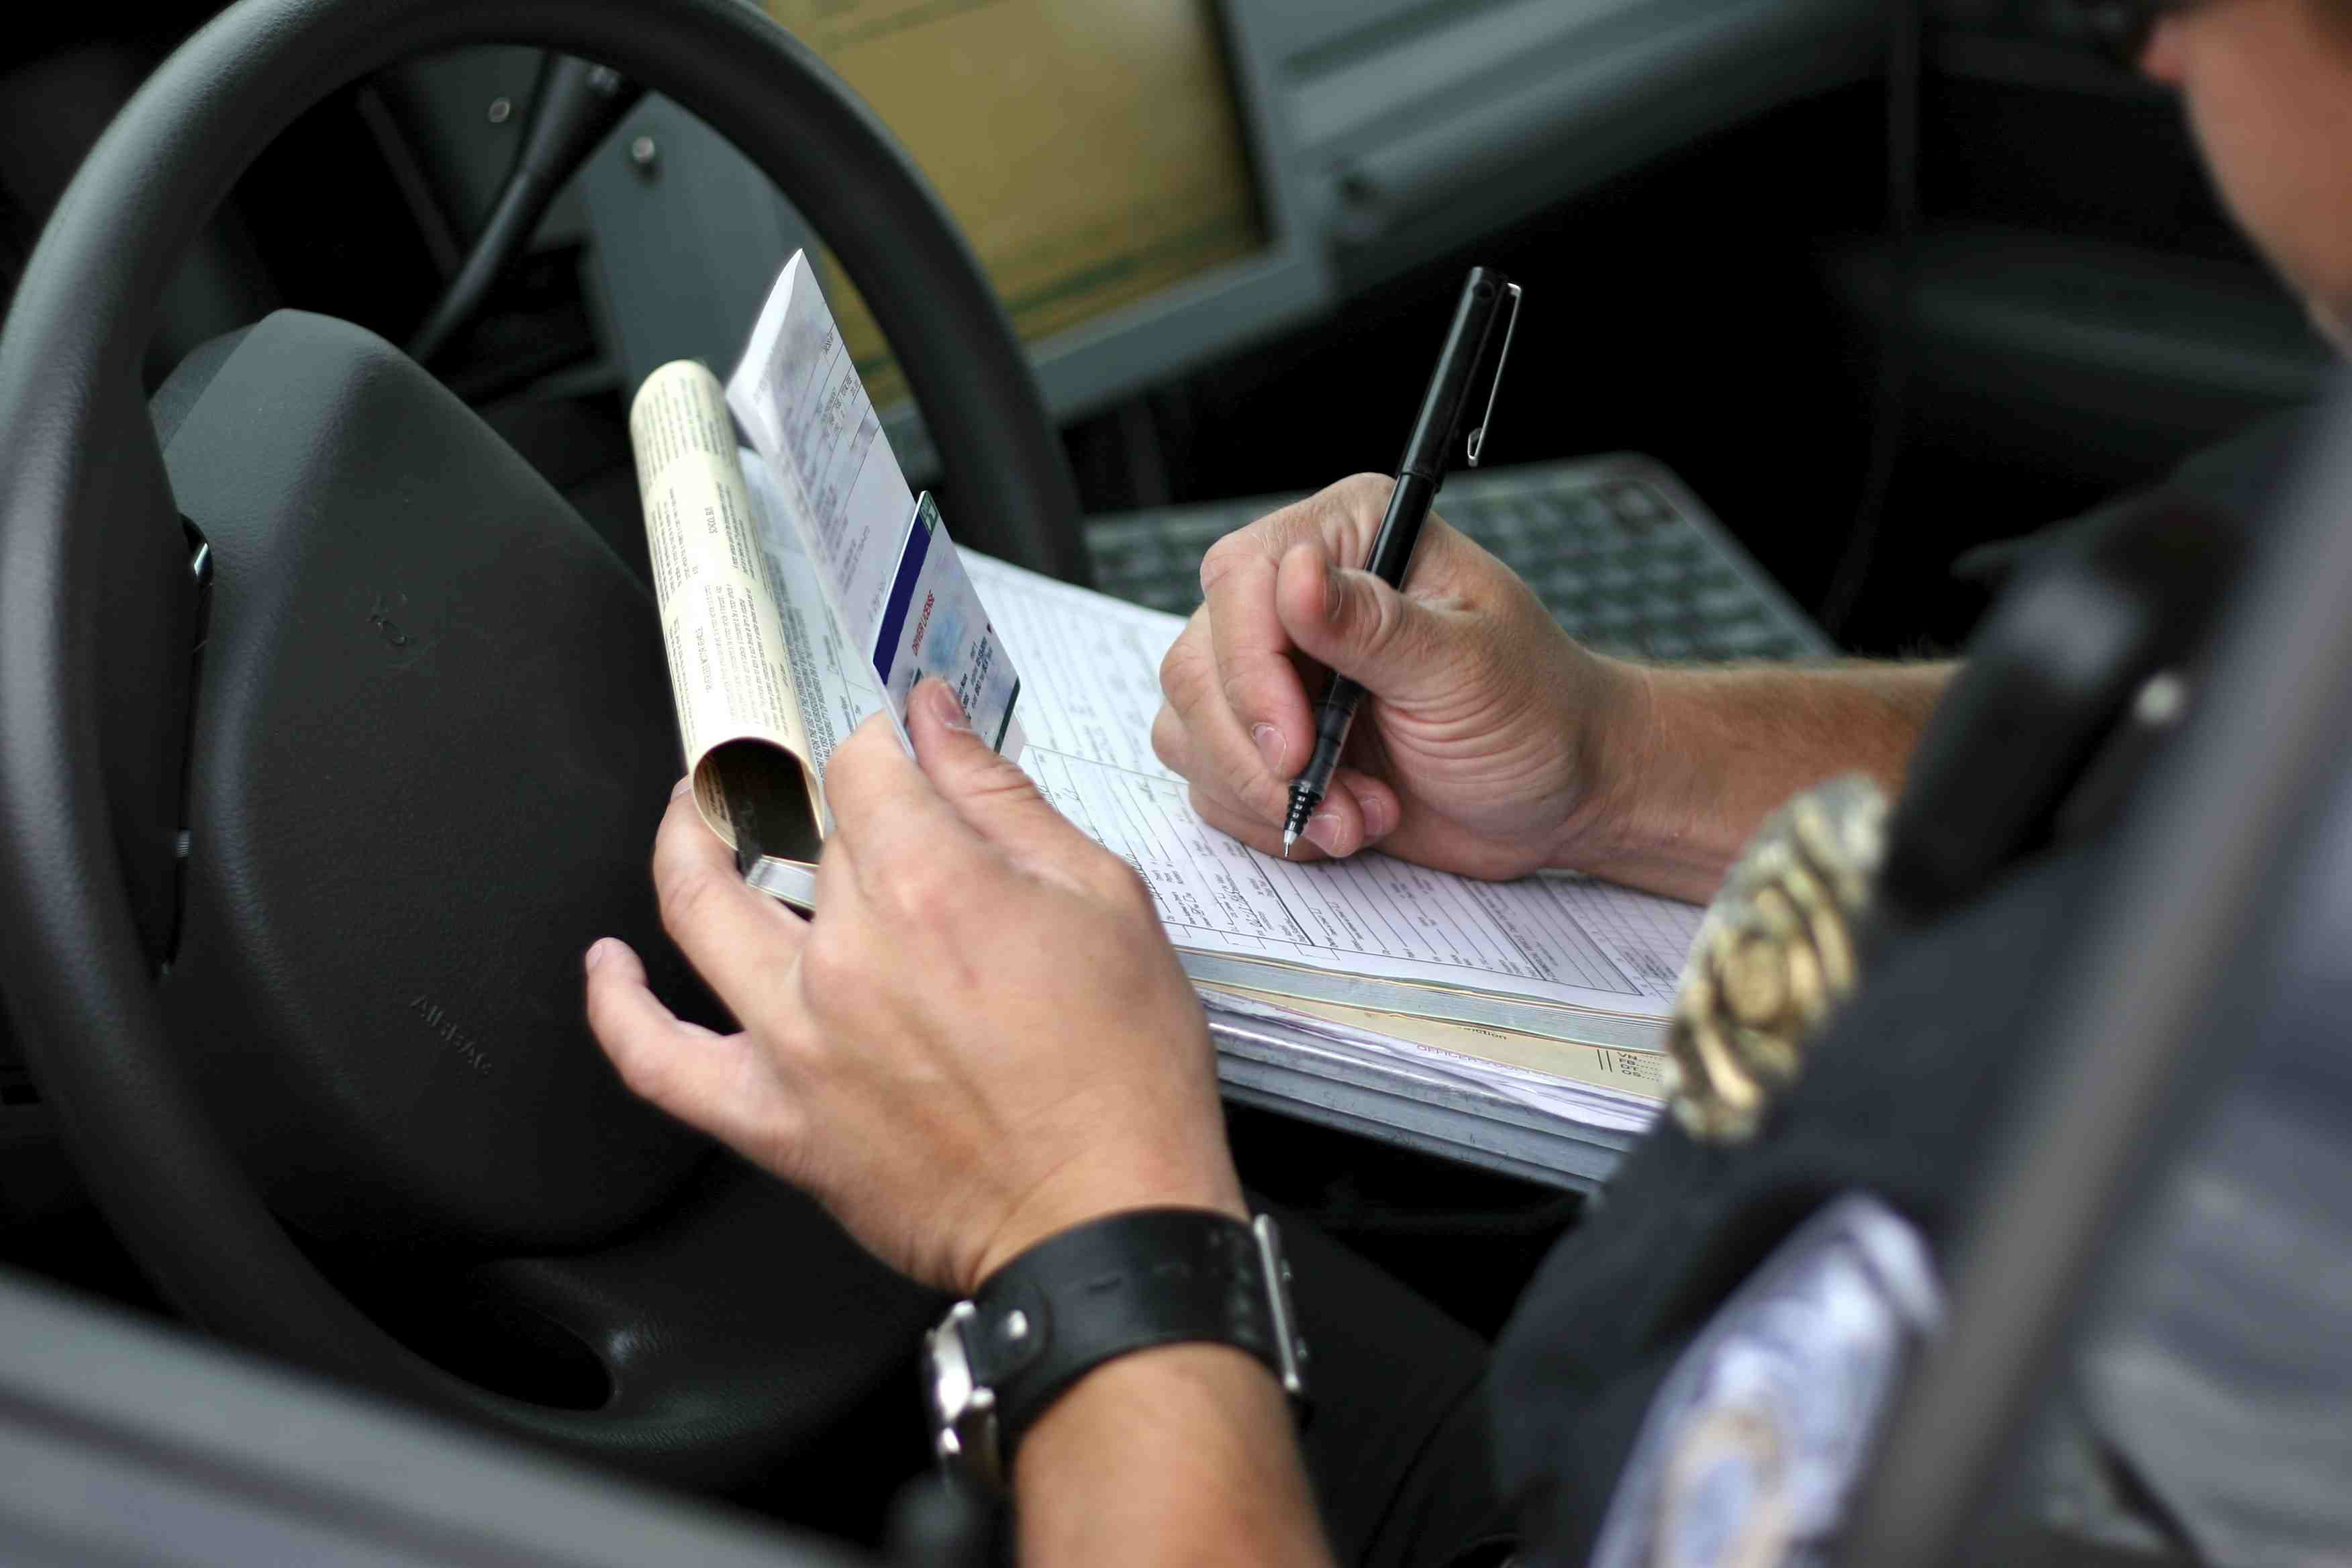 Police officer writing out ticket for speeding, high testosterone levels increases risk taking behaviors like speeding